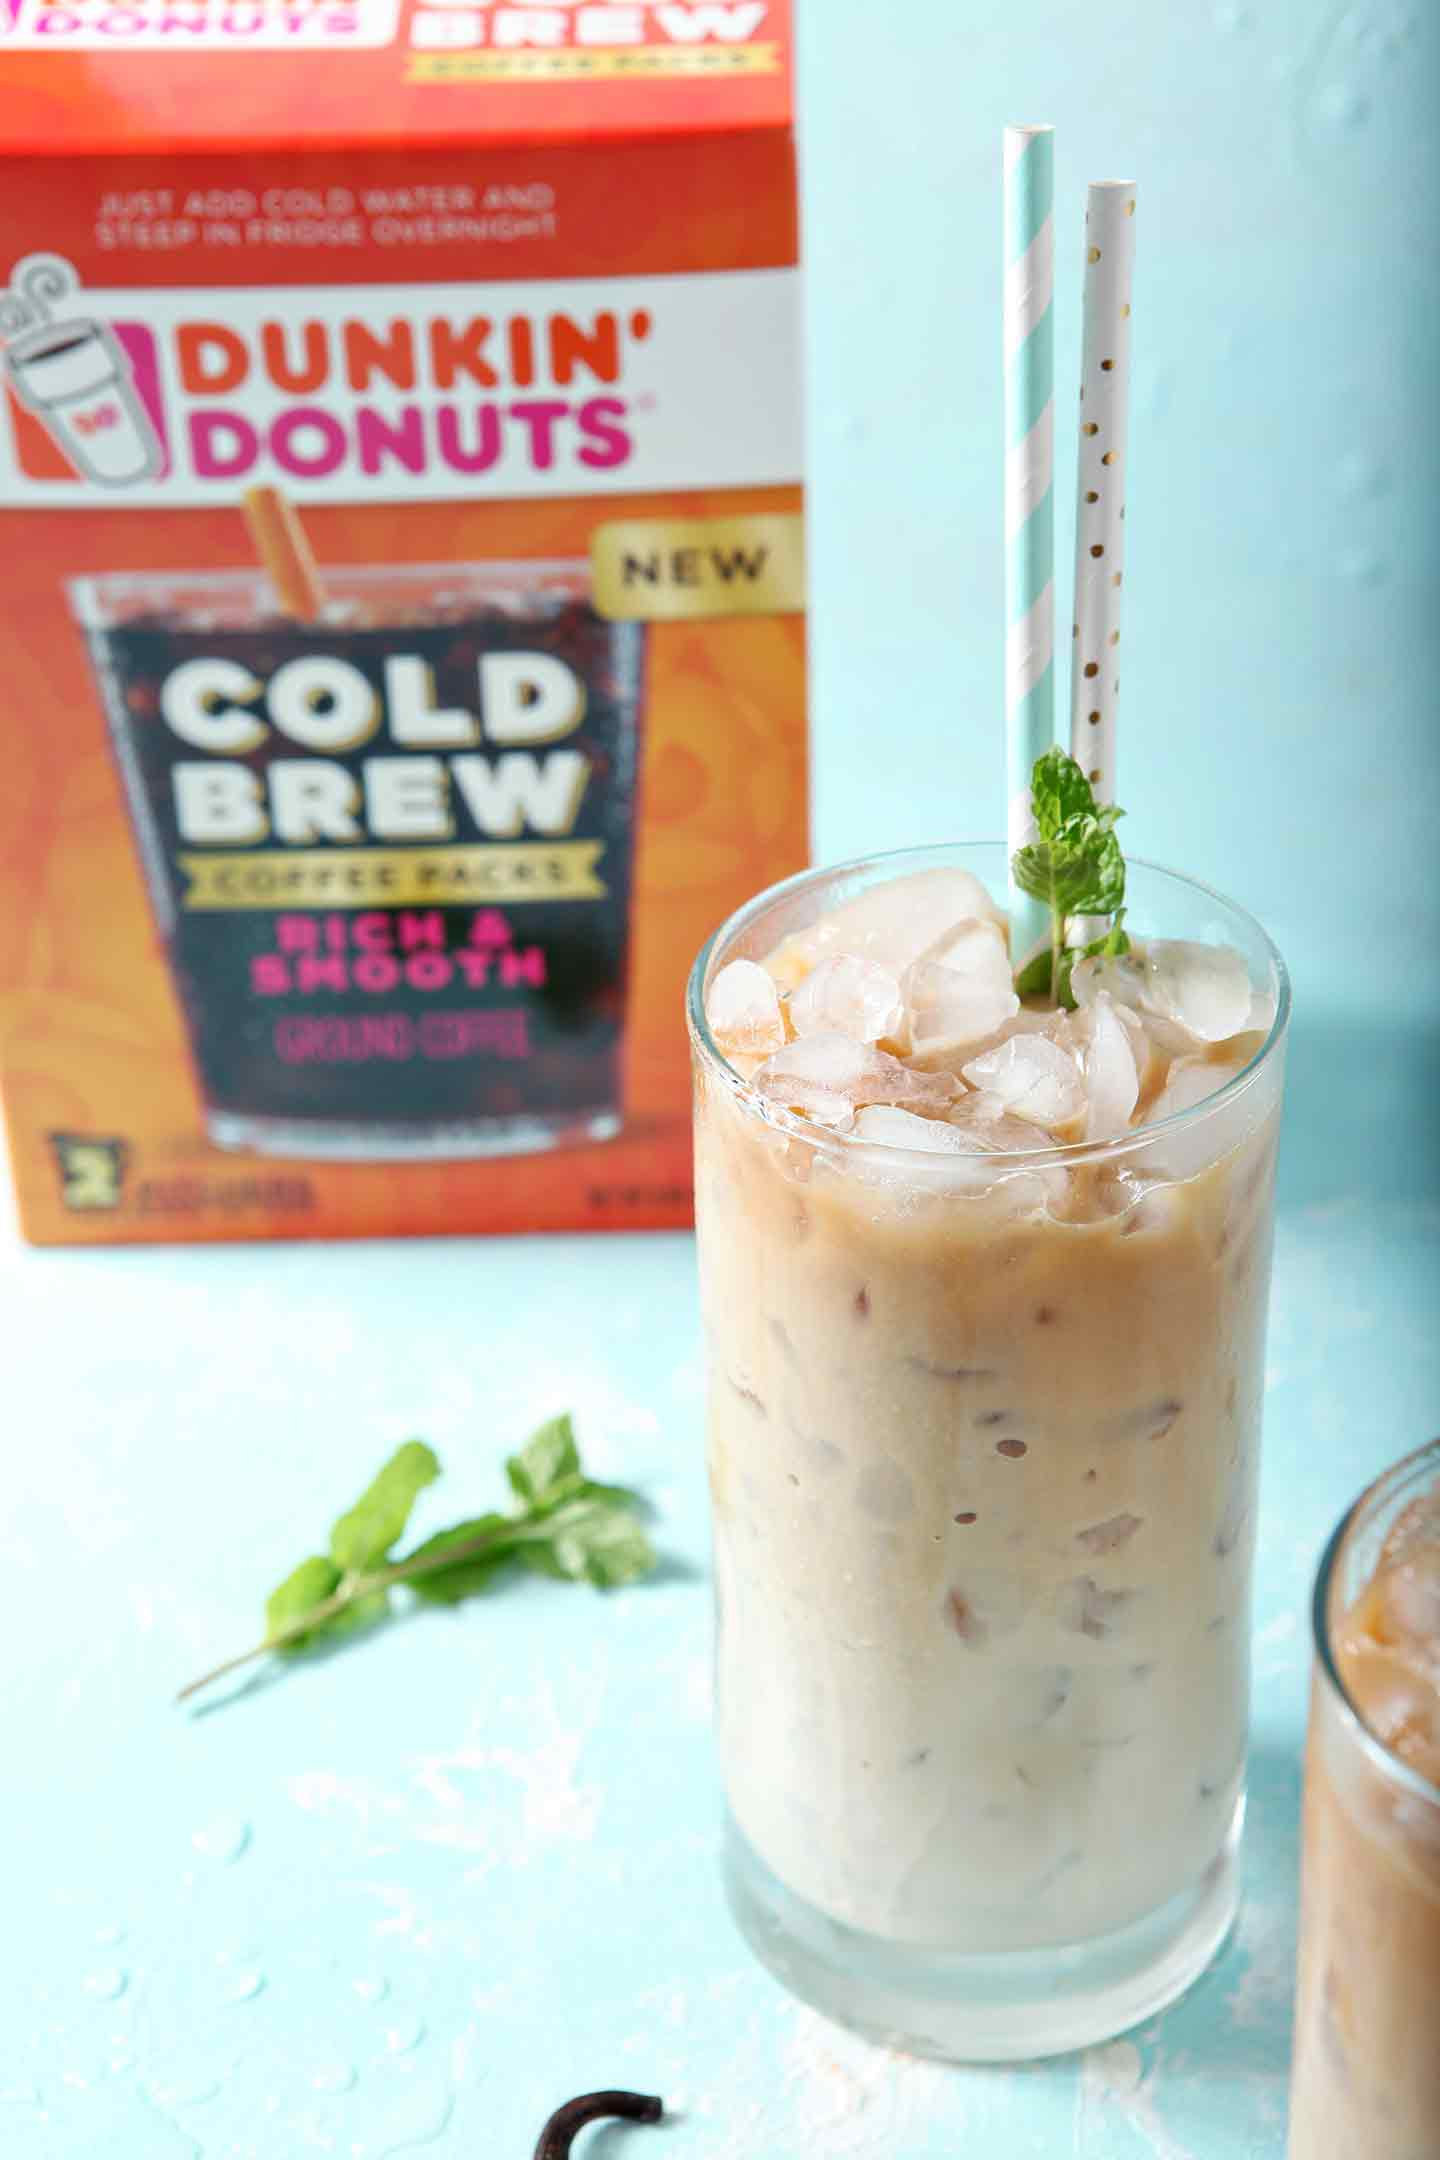 One glass of Dunkin' Donuts Cold Brew with Homemade Vanilla Mint Creamer, on a turquoise background, ready for drinking, with the Dunkin Donuts Cold Brew package in the background